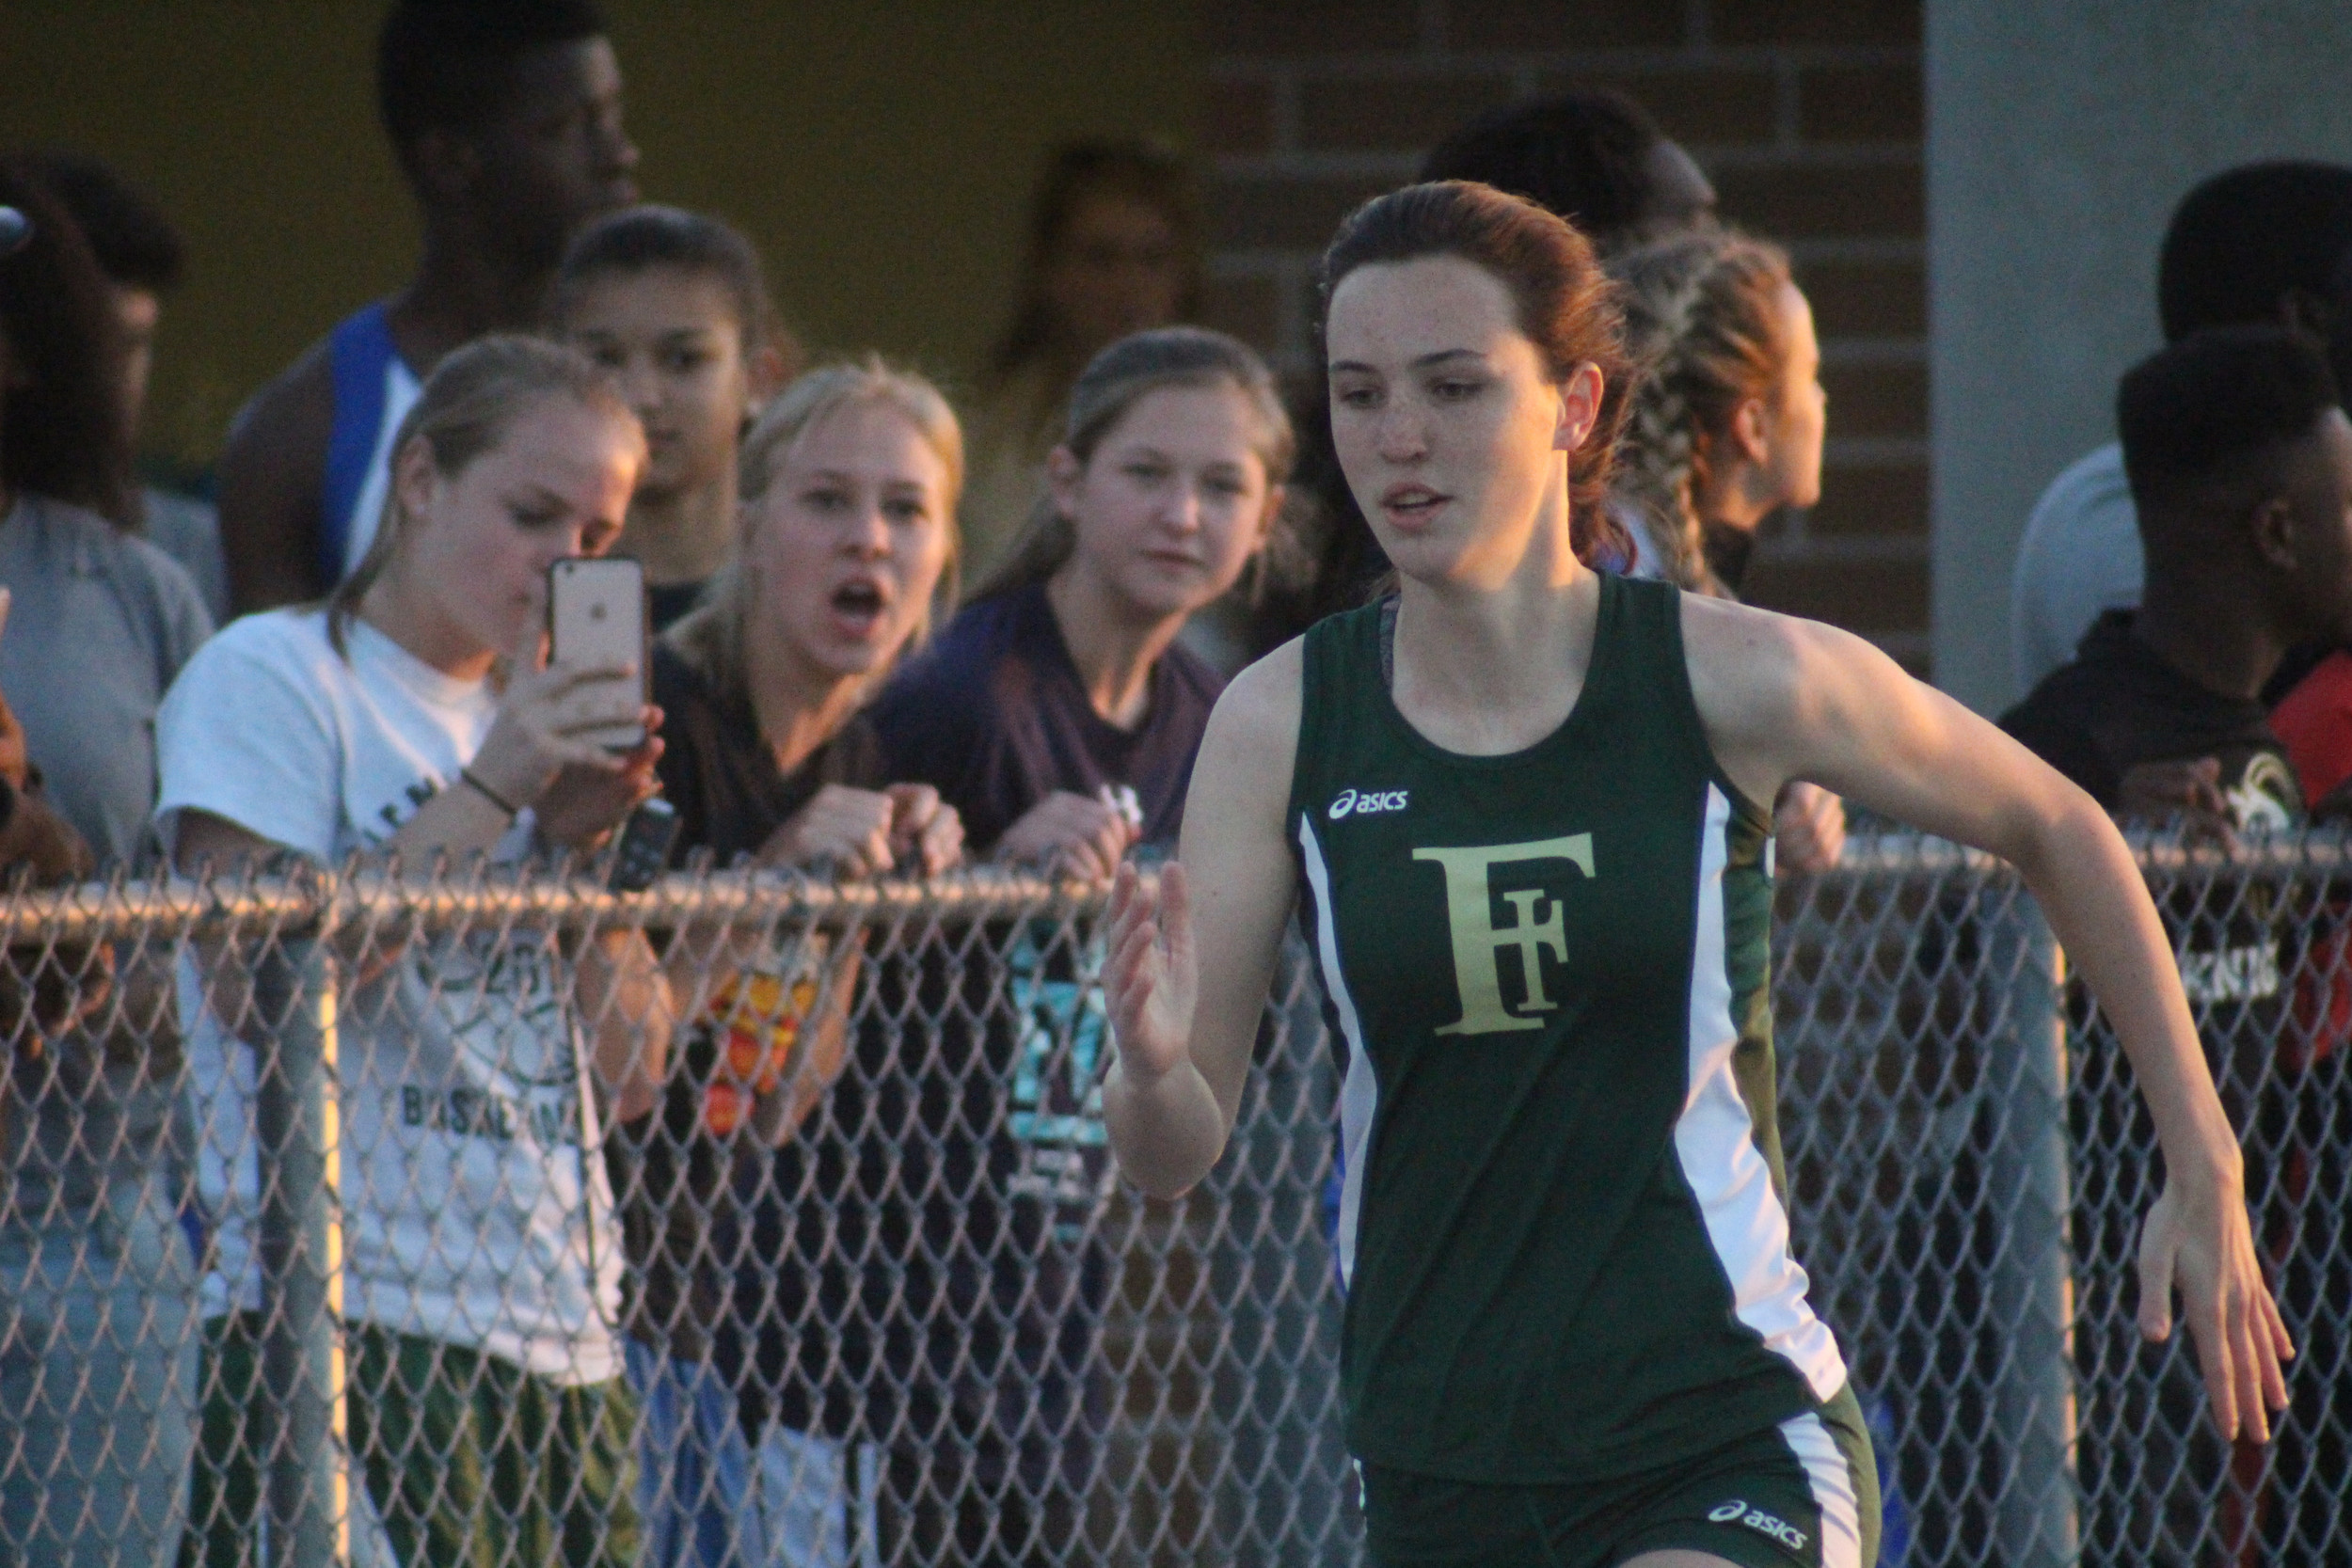 Fleming Island 400 meter runner Aubrey Burke, also a Golden Eagle basketball player, runs by teammates on the fence at the Panther Track Invite.  Burke finished seventh.